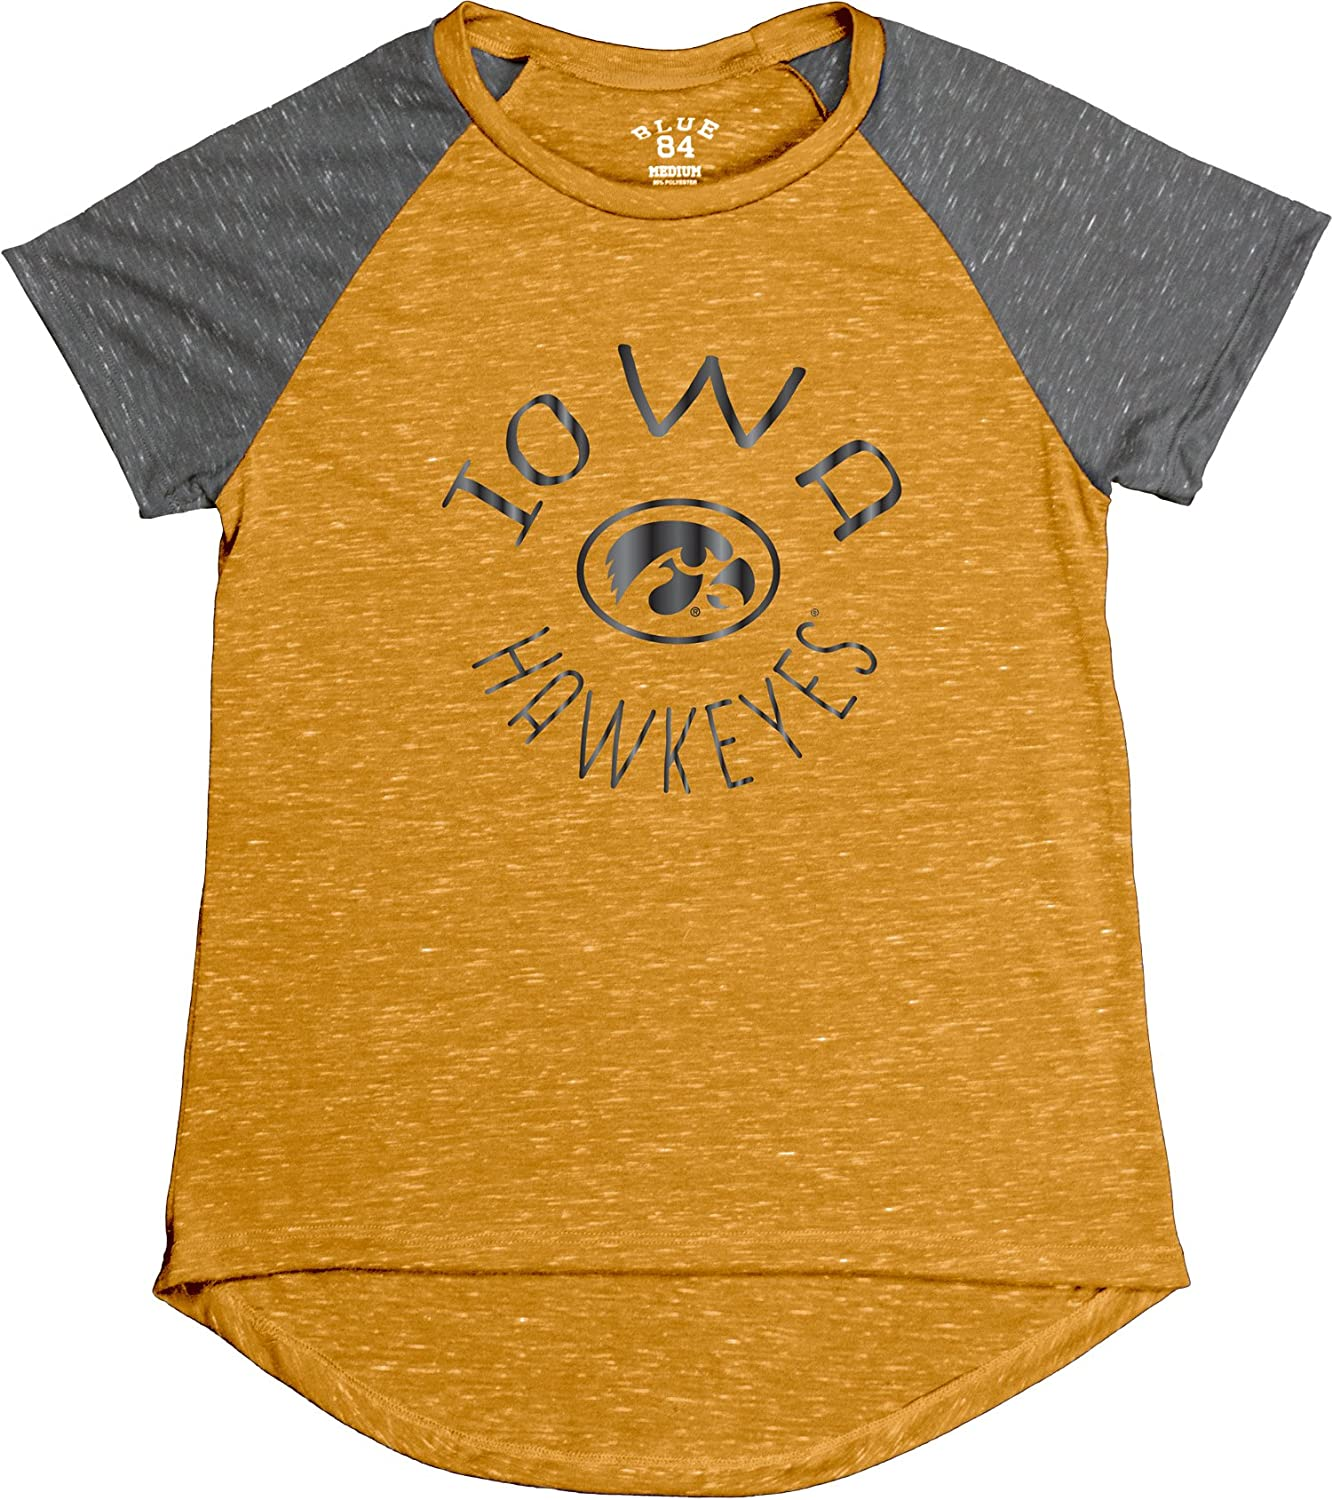 Gold Blue 84 NCAA Iowa Hawkeyes Womens Gracie Confetti Raglan Tee Small